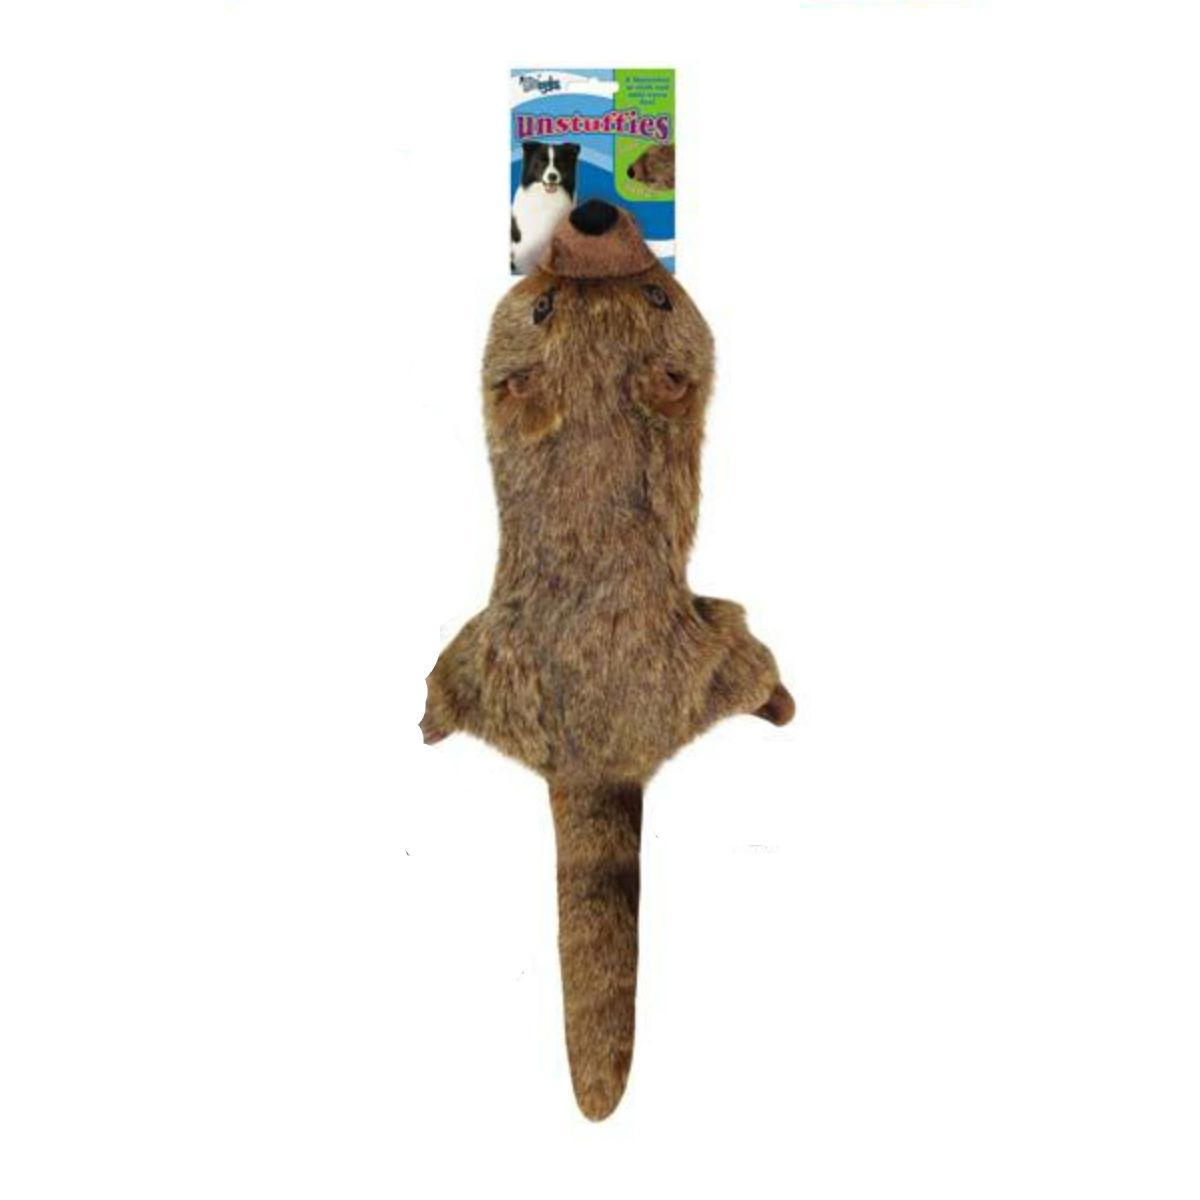 Grriggles Unstuffies Dog Toy - Mongoose